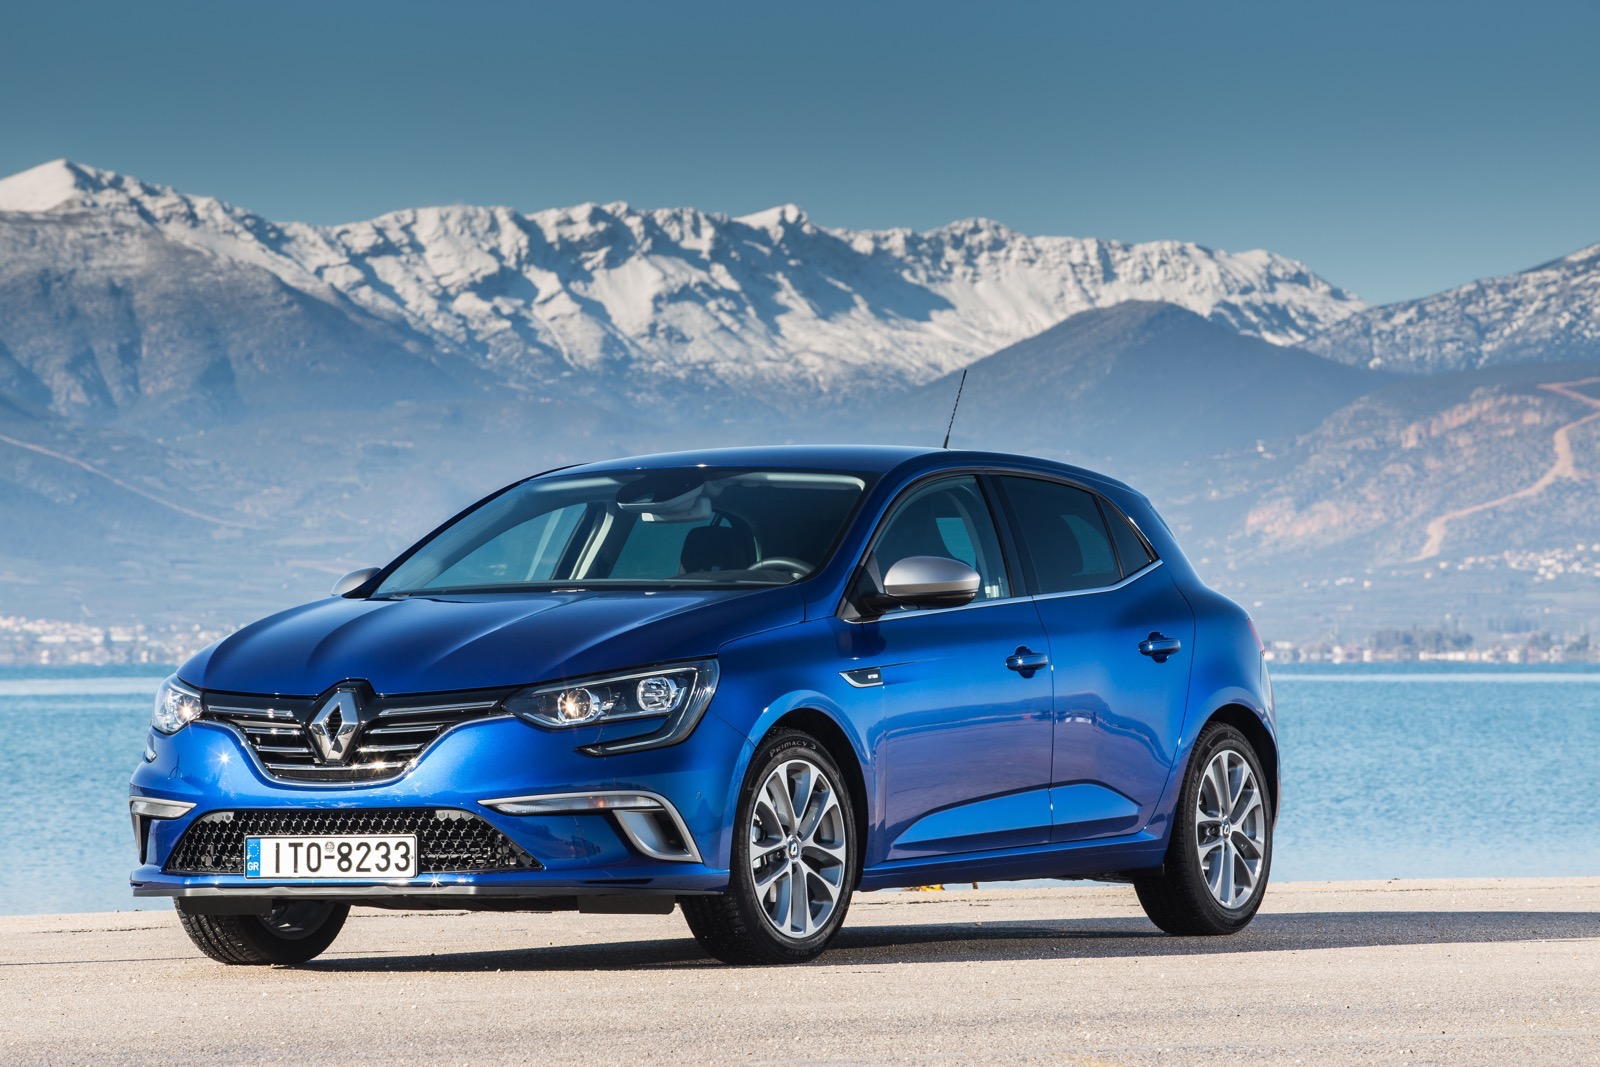 First_Drive_Renault_Megane_15